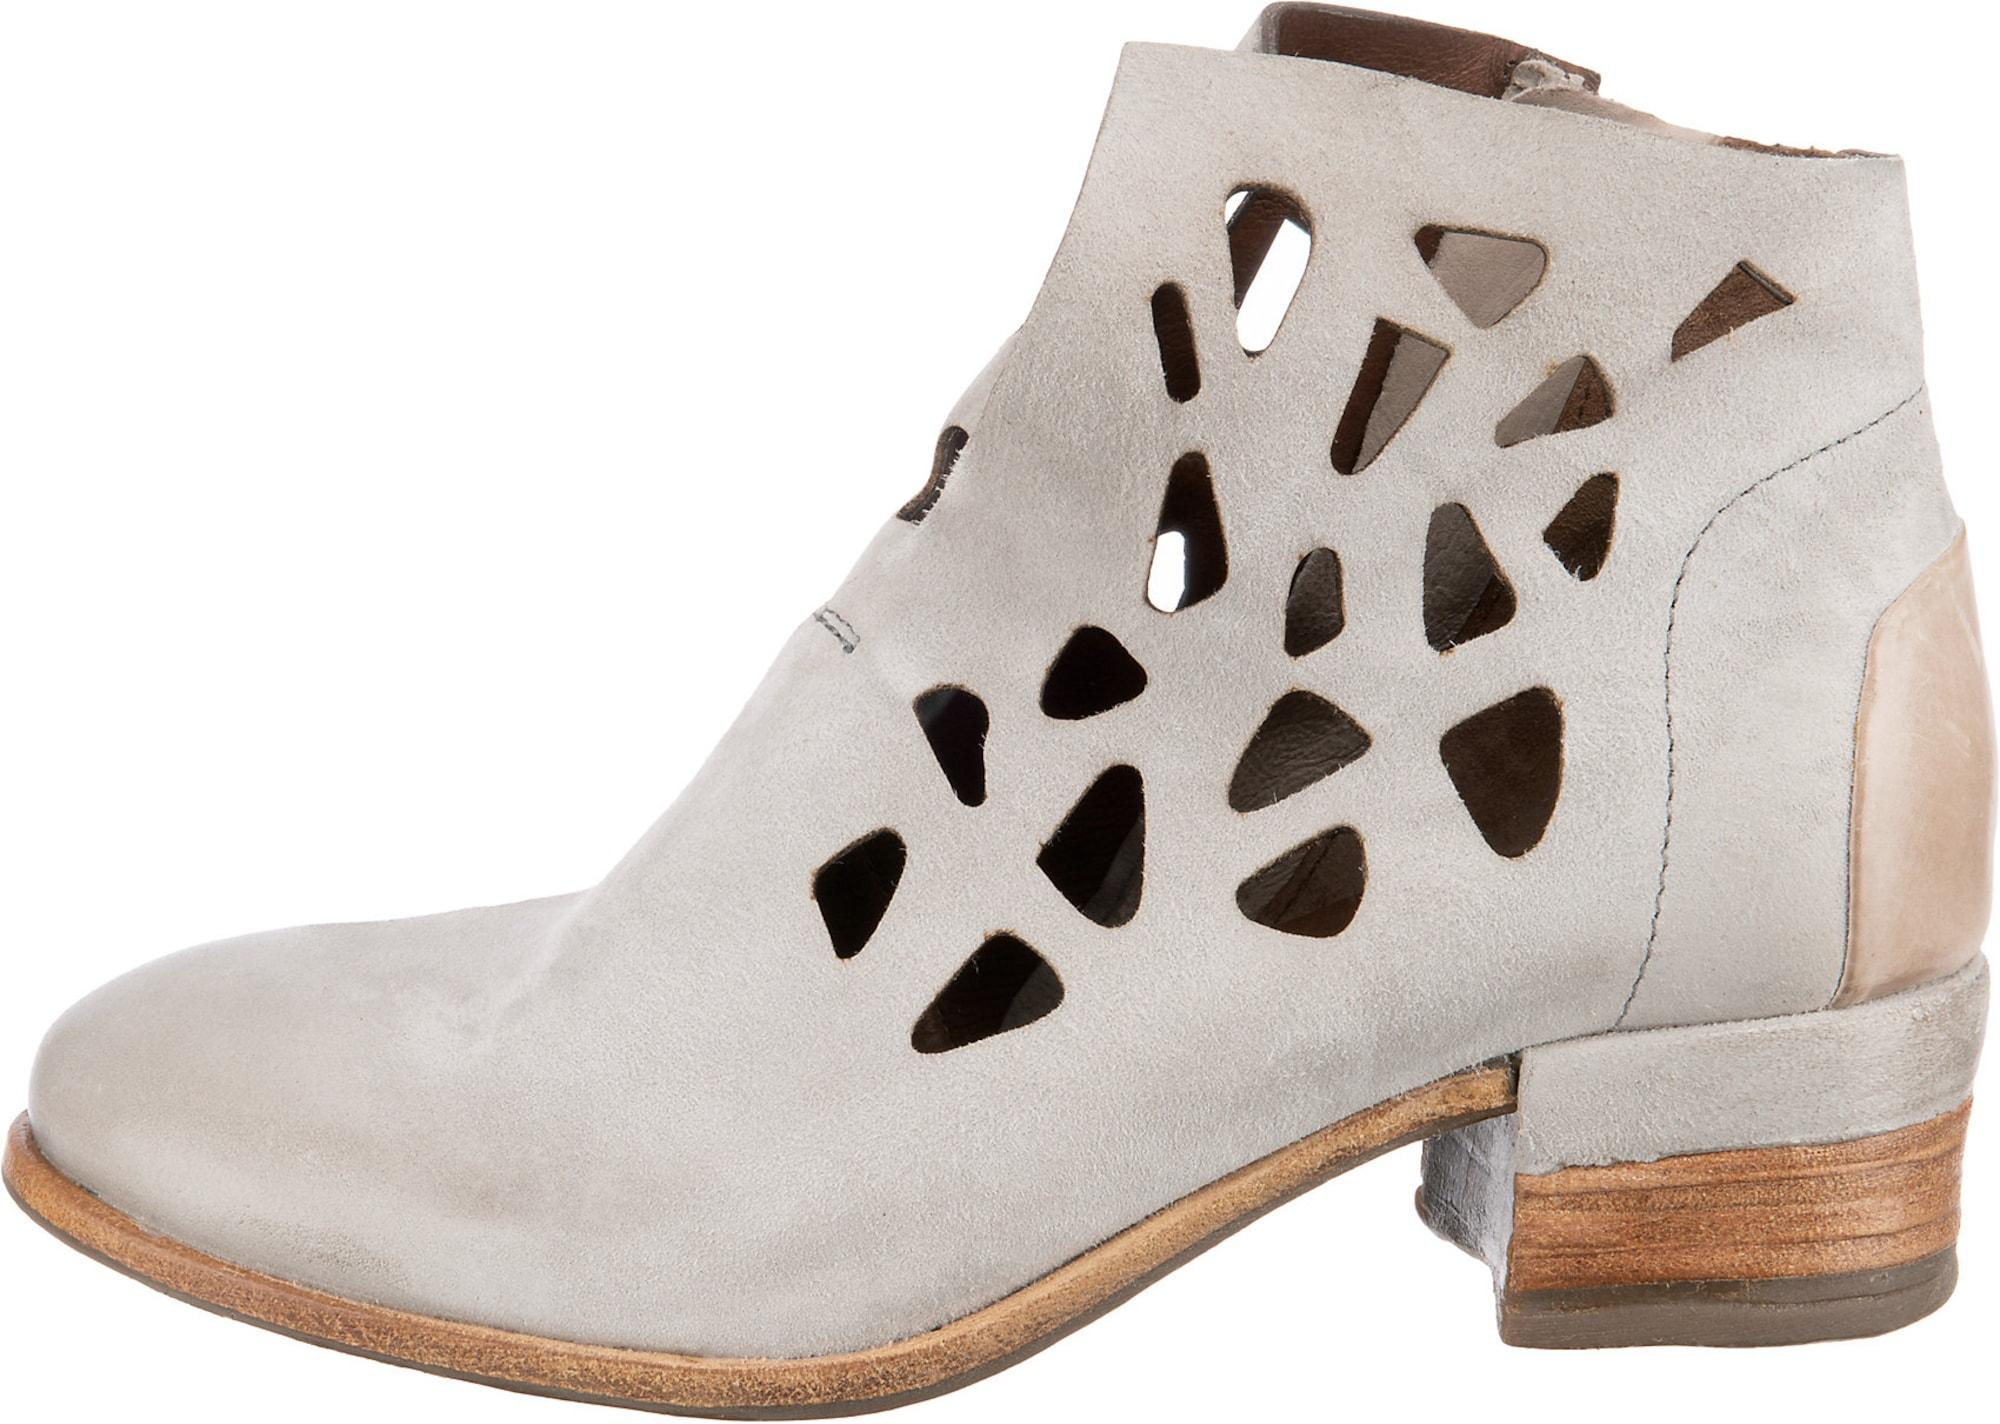 A.S.98 Give Cut Out-Stiefeletten hellgrau